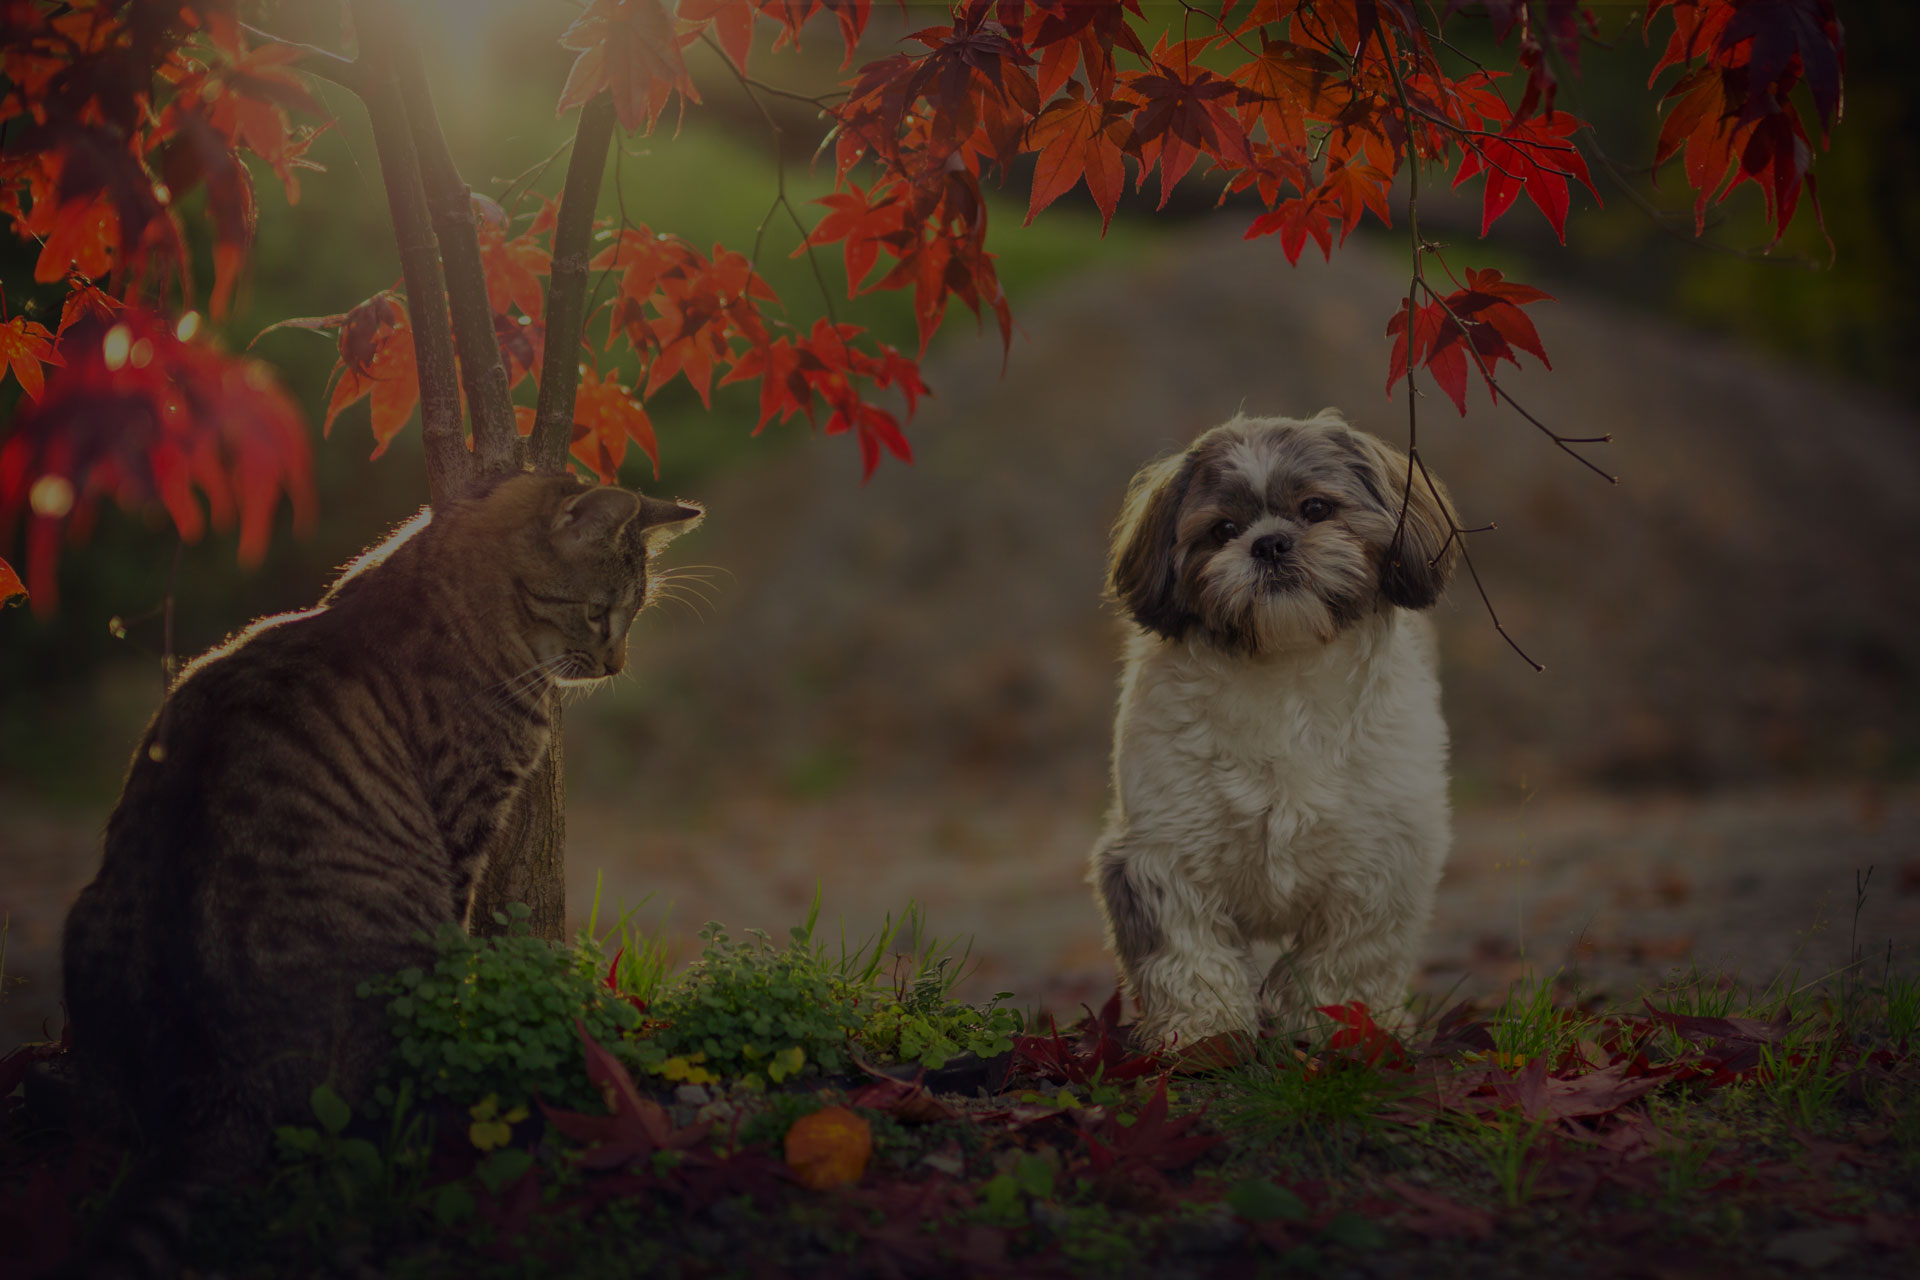 Shih tzu and cat in autumn